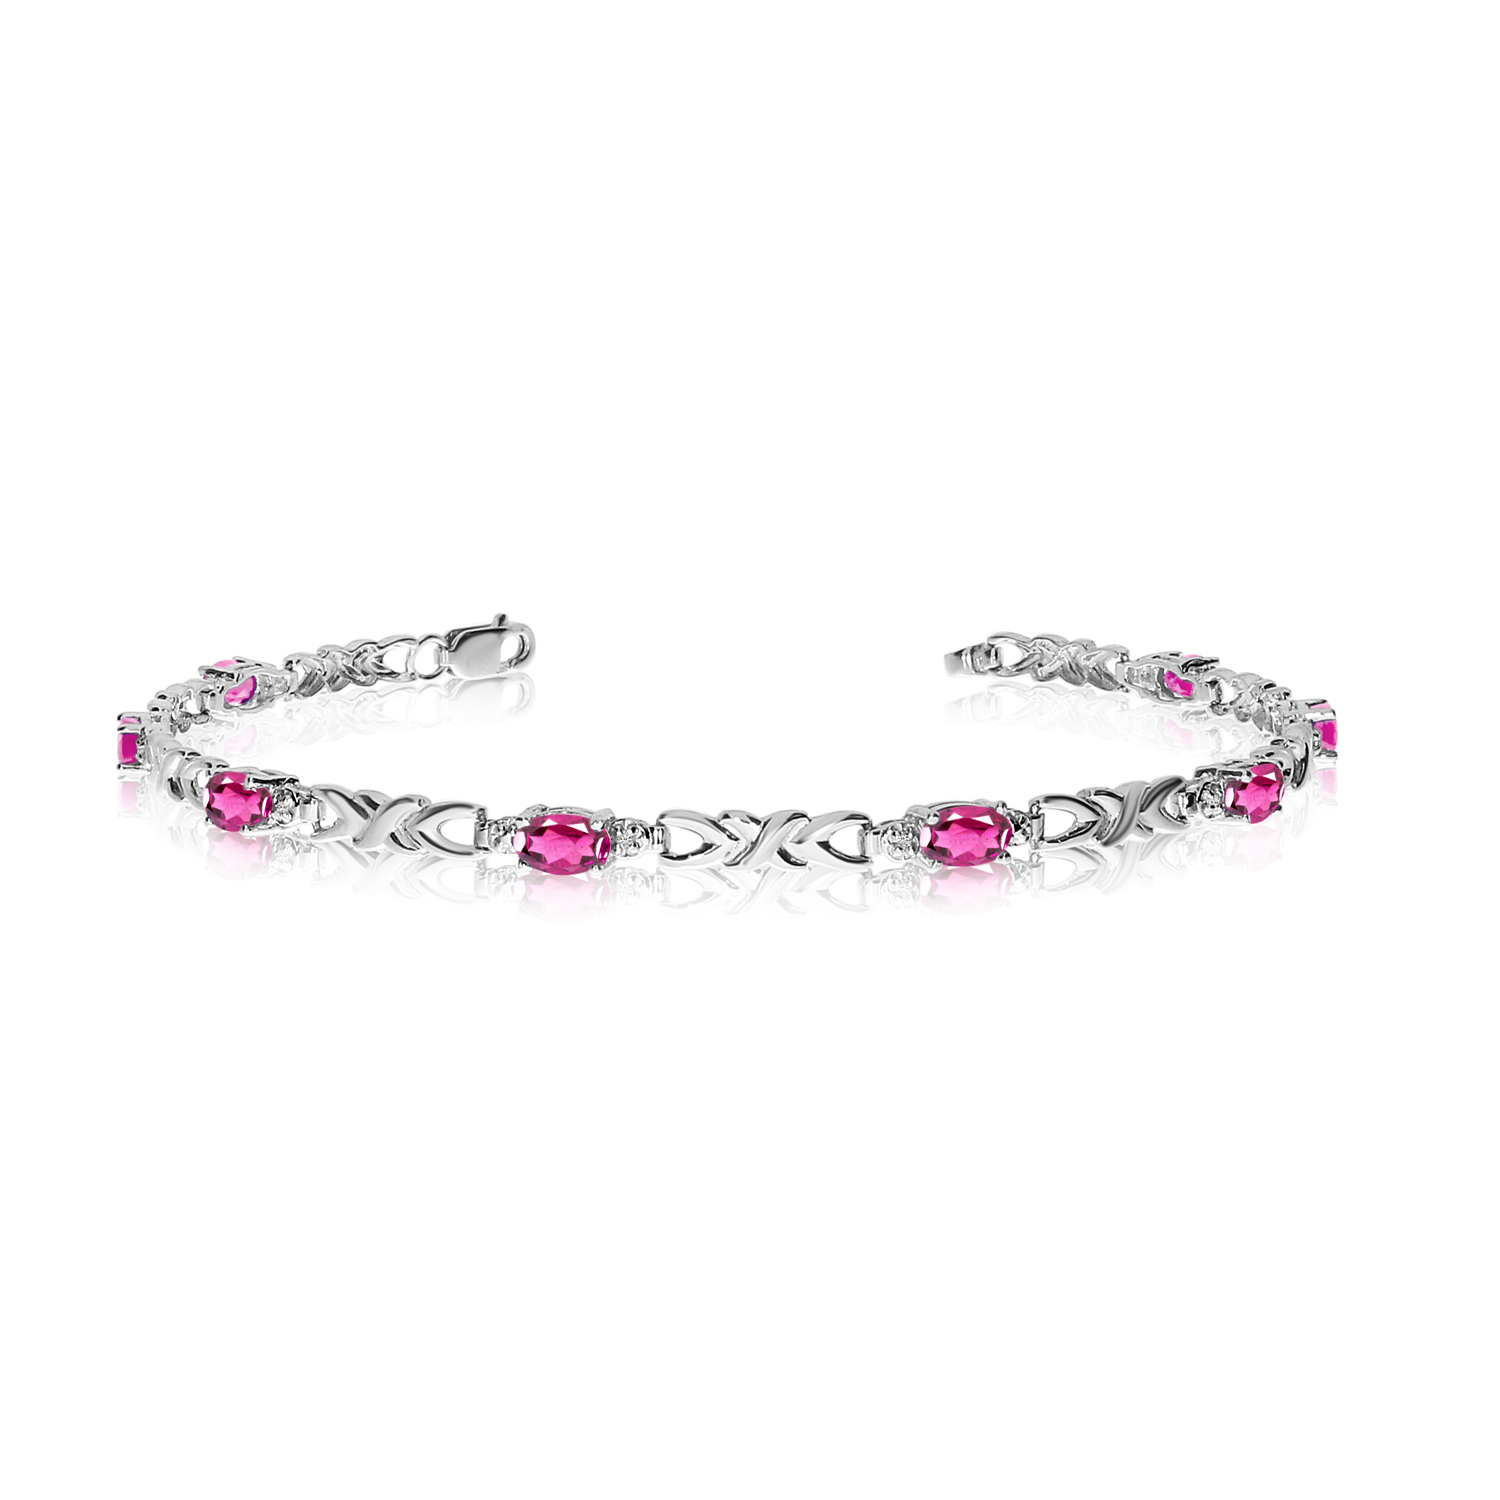 10K White Gold Oval Pink Topaz and Diamond Bracelet by